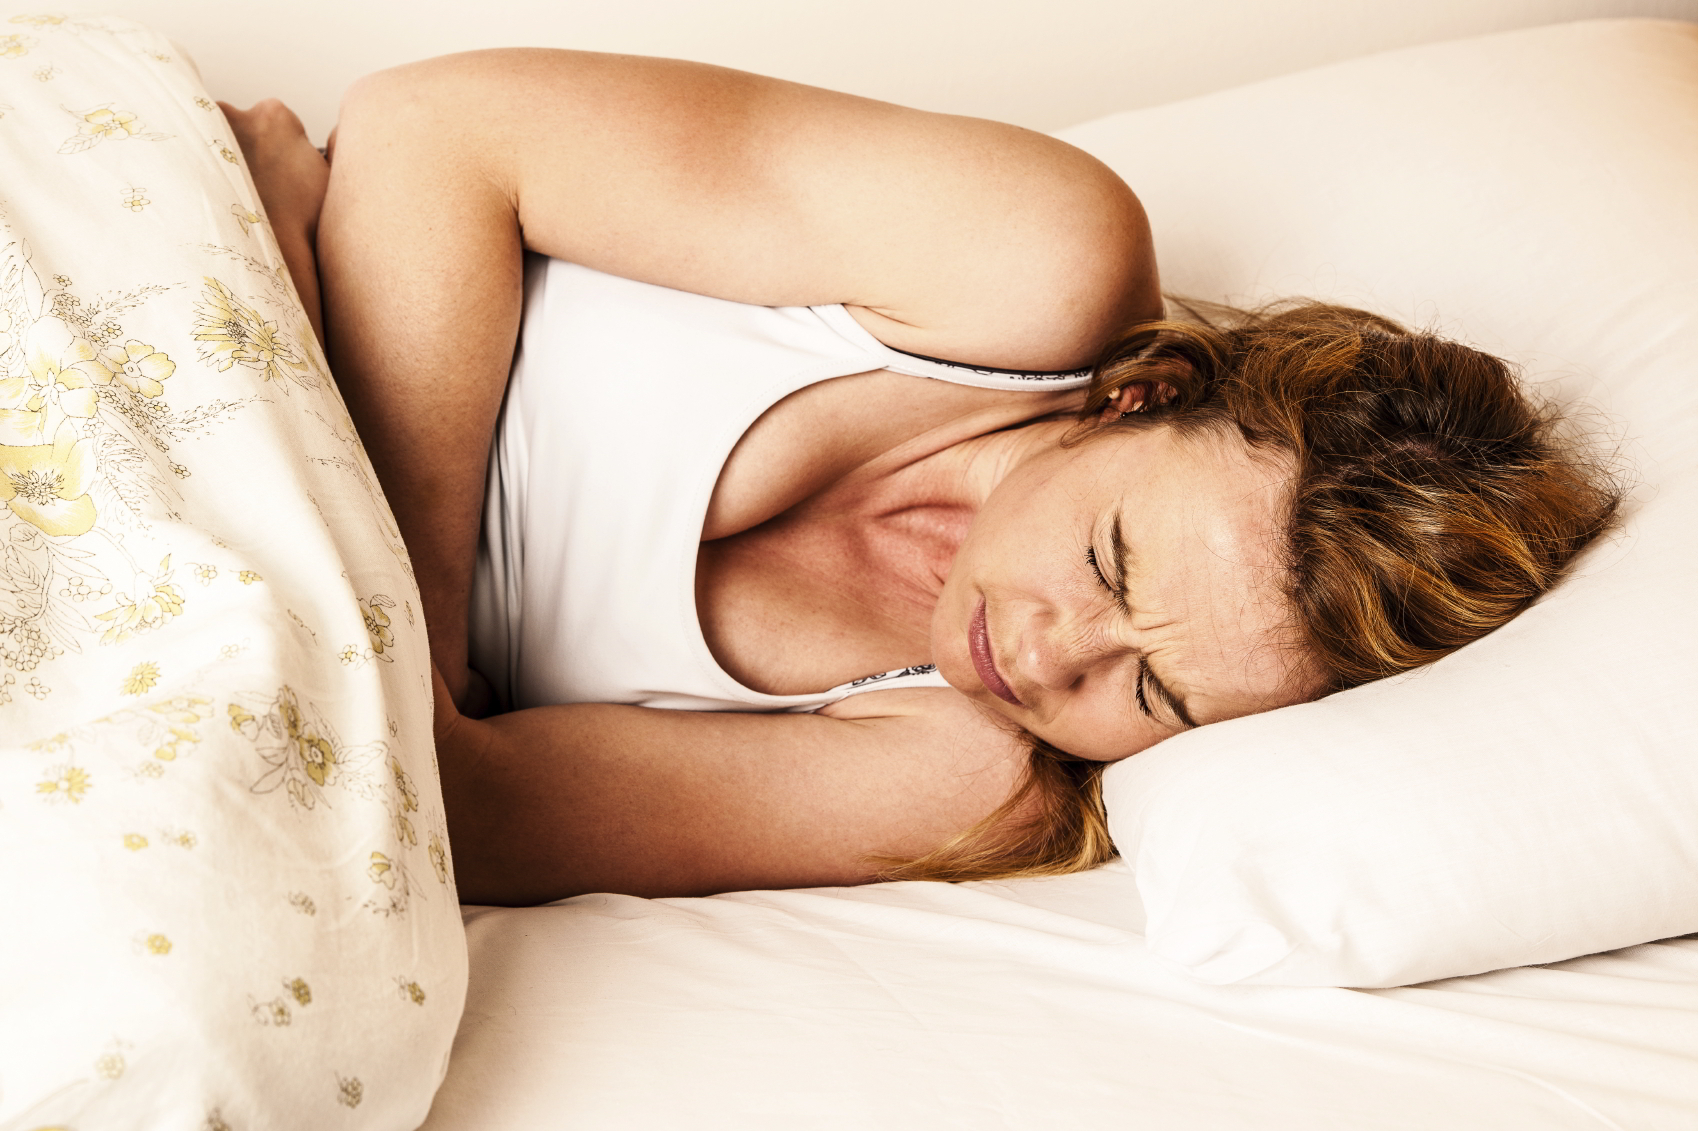 How To Get Rid Of Period Pains In Bed